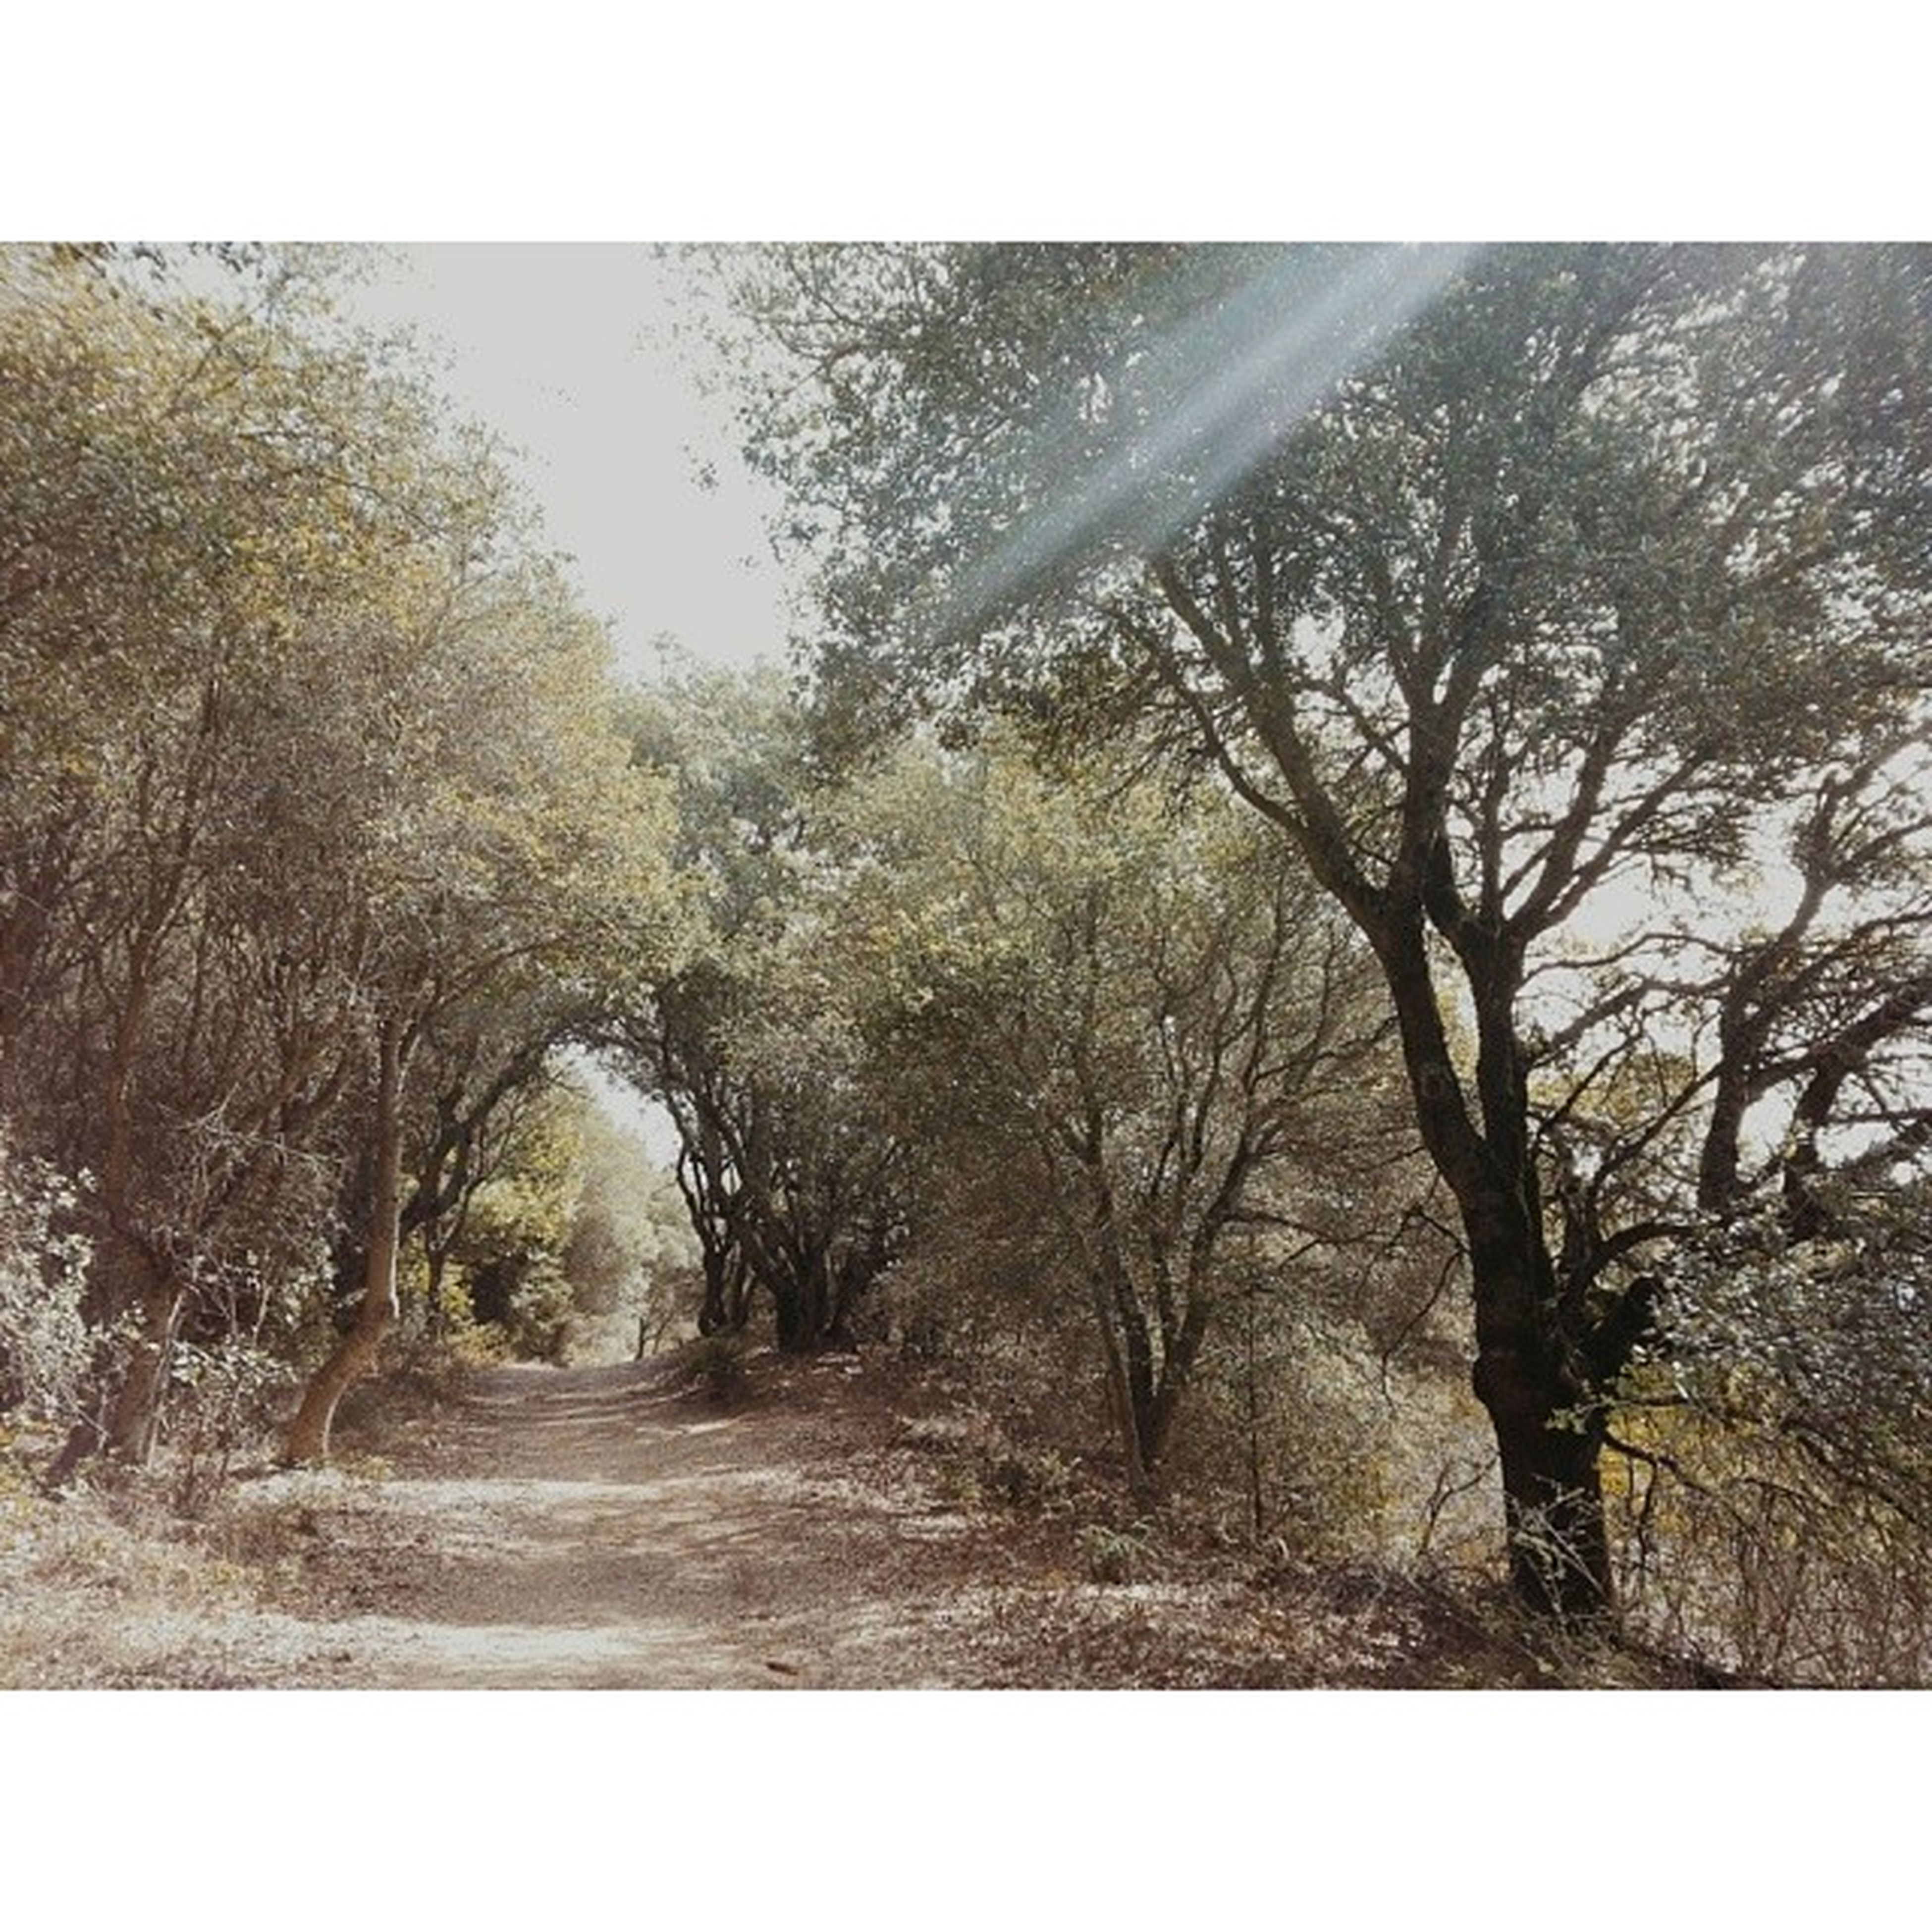 tree, transfer print, the way forward, tranquility, auto post production filter, forest, diminishing perspective, tranquil scene, growth, nature, beauty in nature, dirt road, vanishing point, scenics, branch, road, day, non-urban scene, sky, landscape